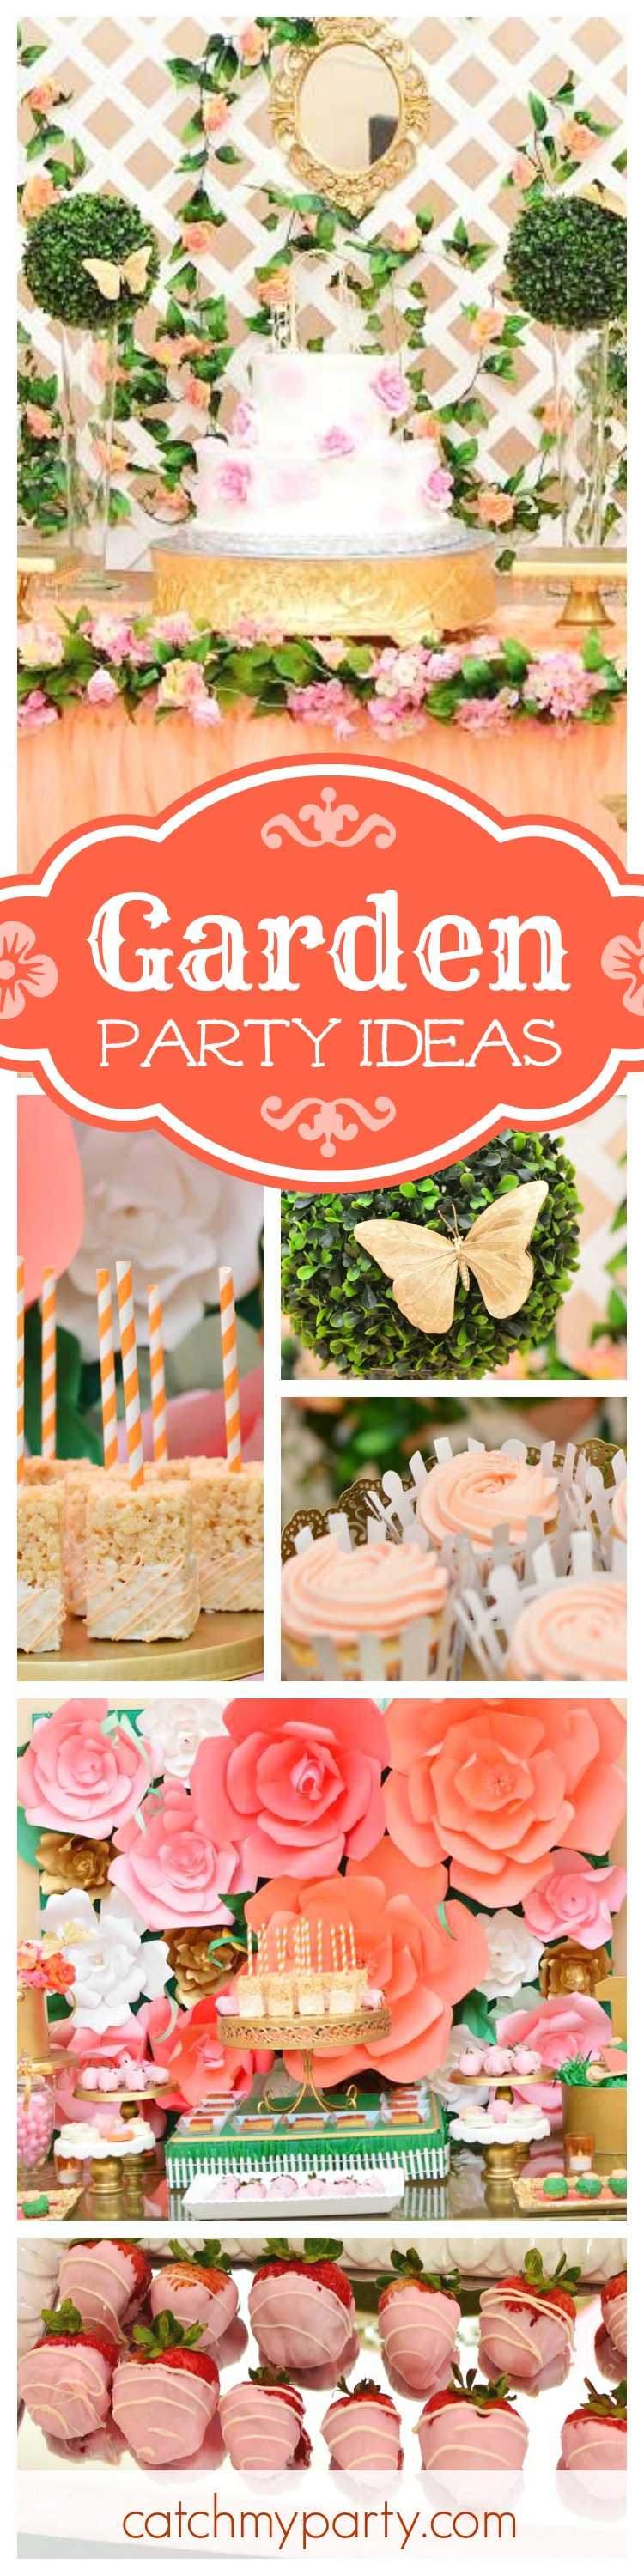 Be blown away by this beautiful Rose Garden birthday party! The backdrop and birthday cake are gorgeous! See more party ideas and share yours at CatchMyParty.com